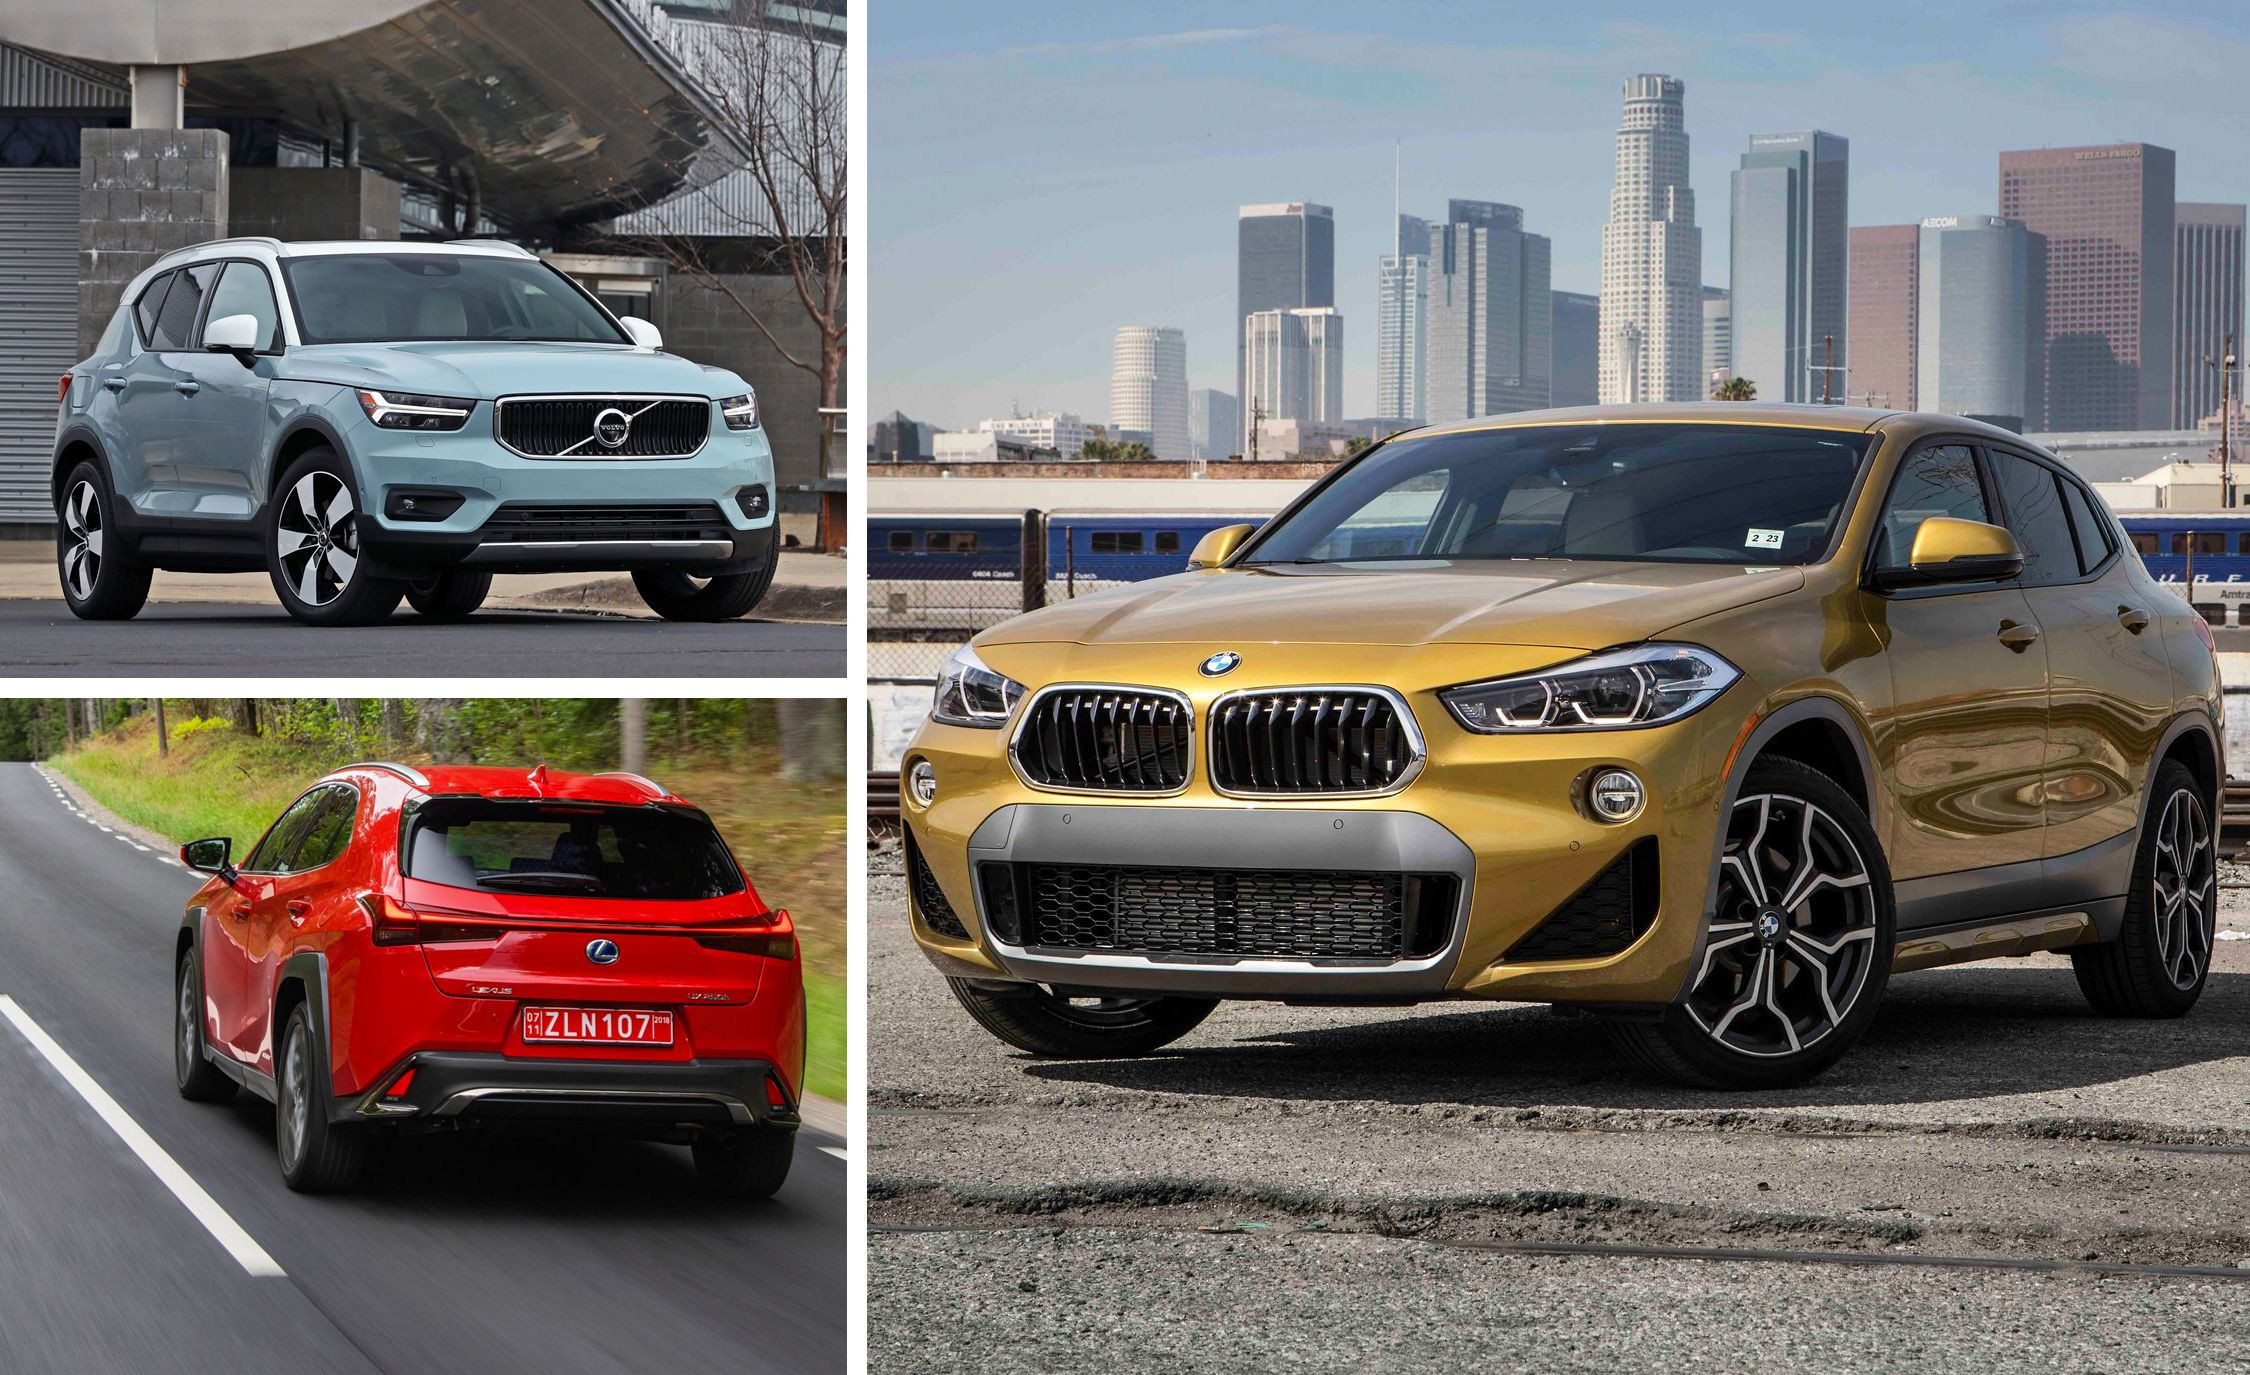 Every Subcompact Luxury Crossover Suv Ranked From Worst To Best Feature Car And Driver